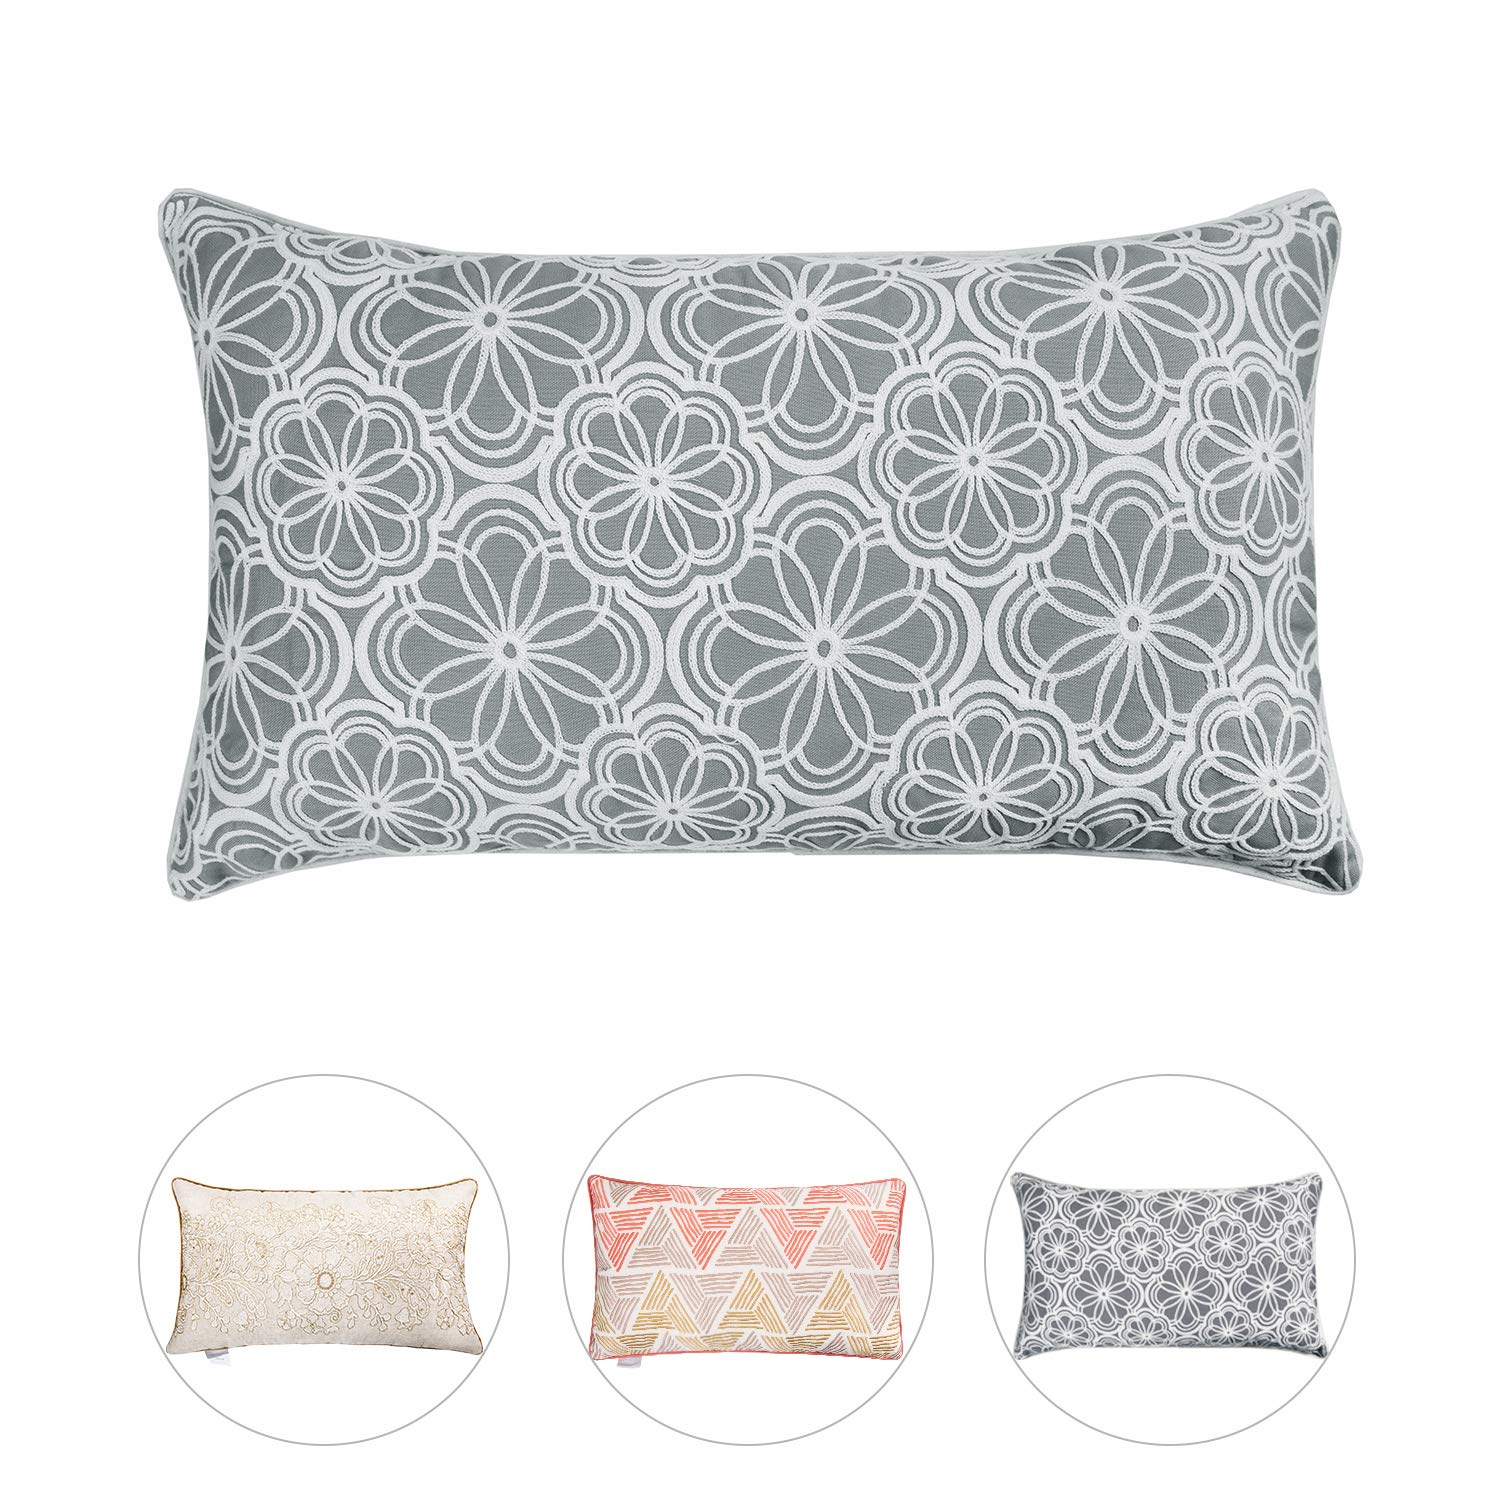 Hahadidi Decorative Throw Pillow Covers Flower Crewel Embroidery Pillow Case Cushion Covers for Bed Sofa Couch Car,Cotton Home Décor Light Grey,14 x 24 Inch(35x60cm)